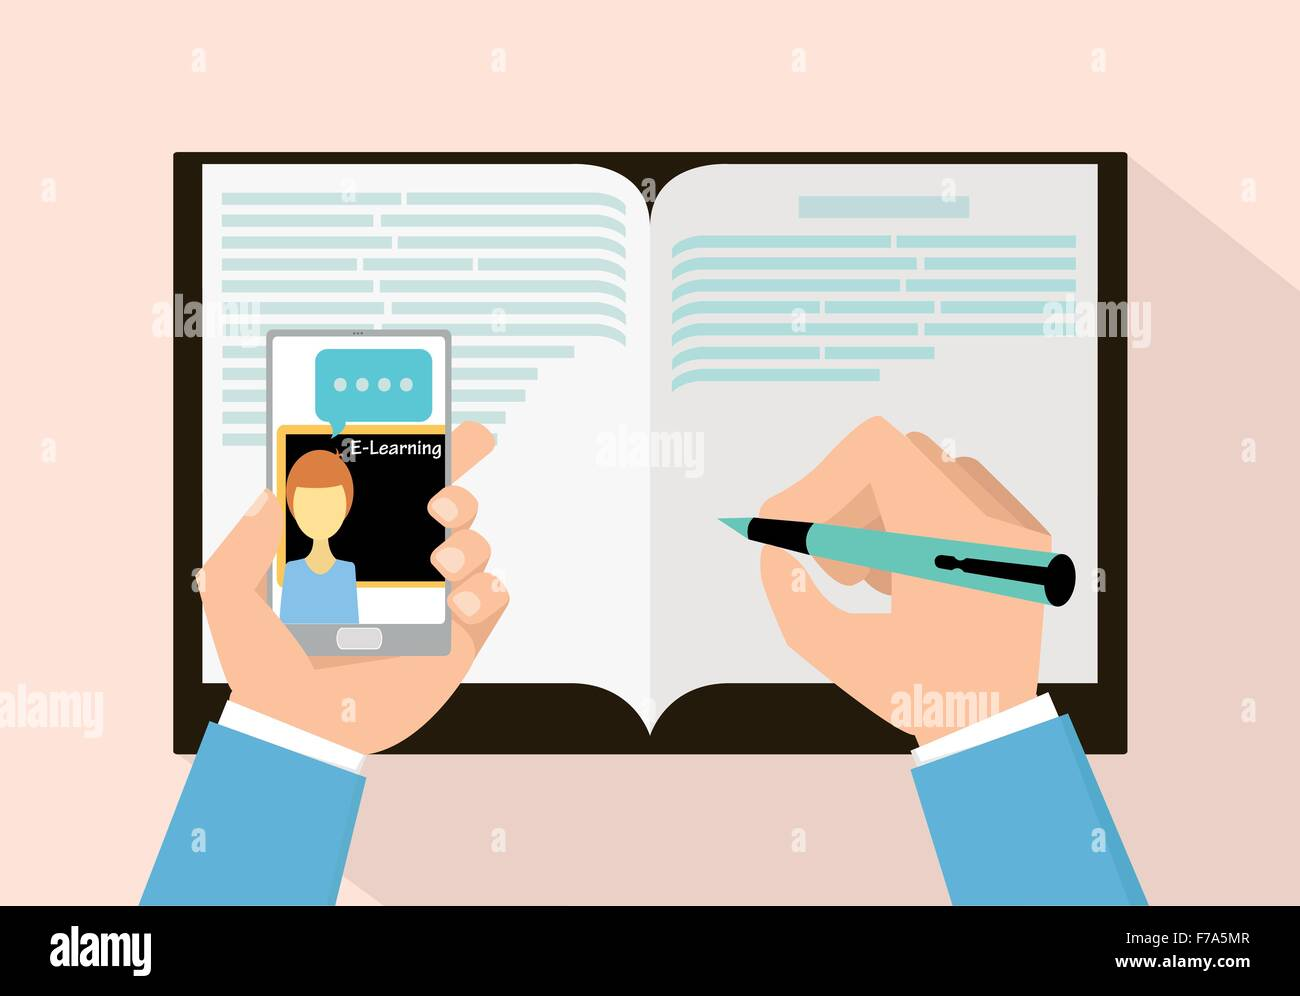 E-learning concept with smart phone vector illustration - Stock Image